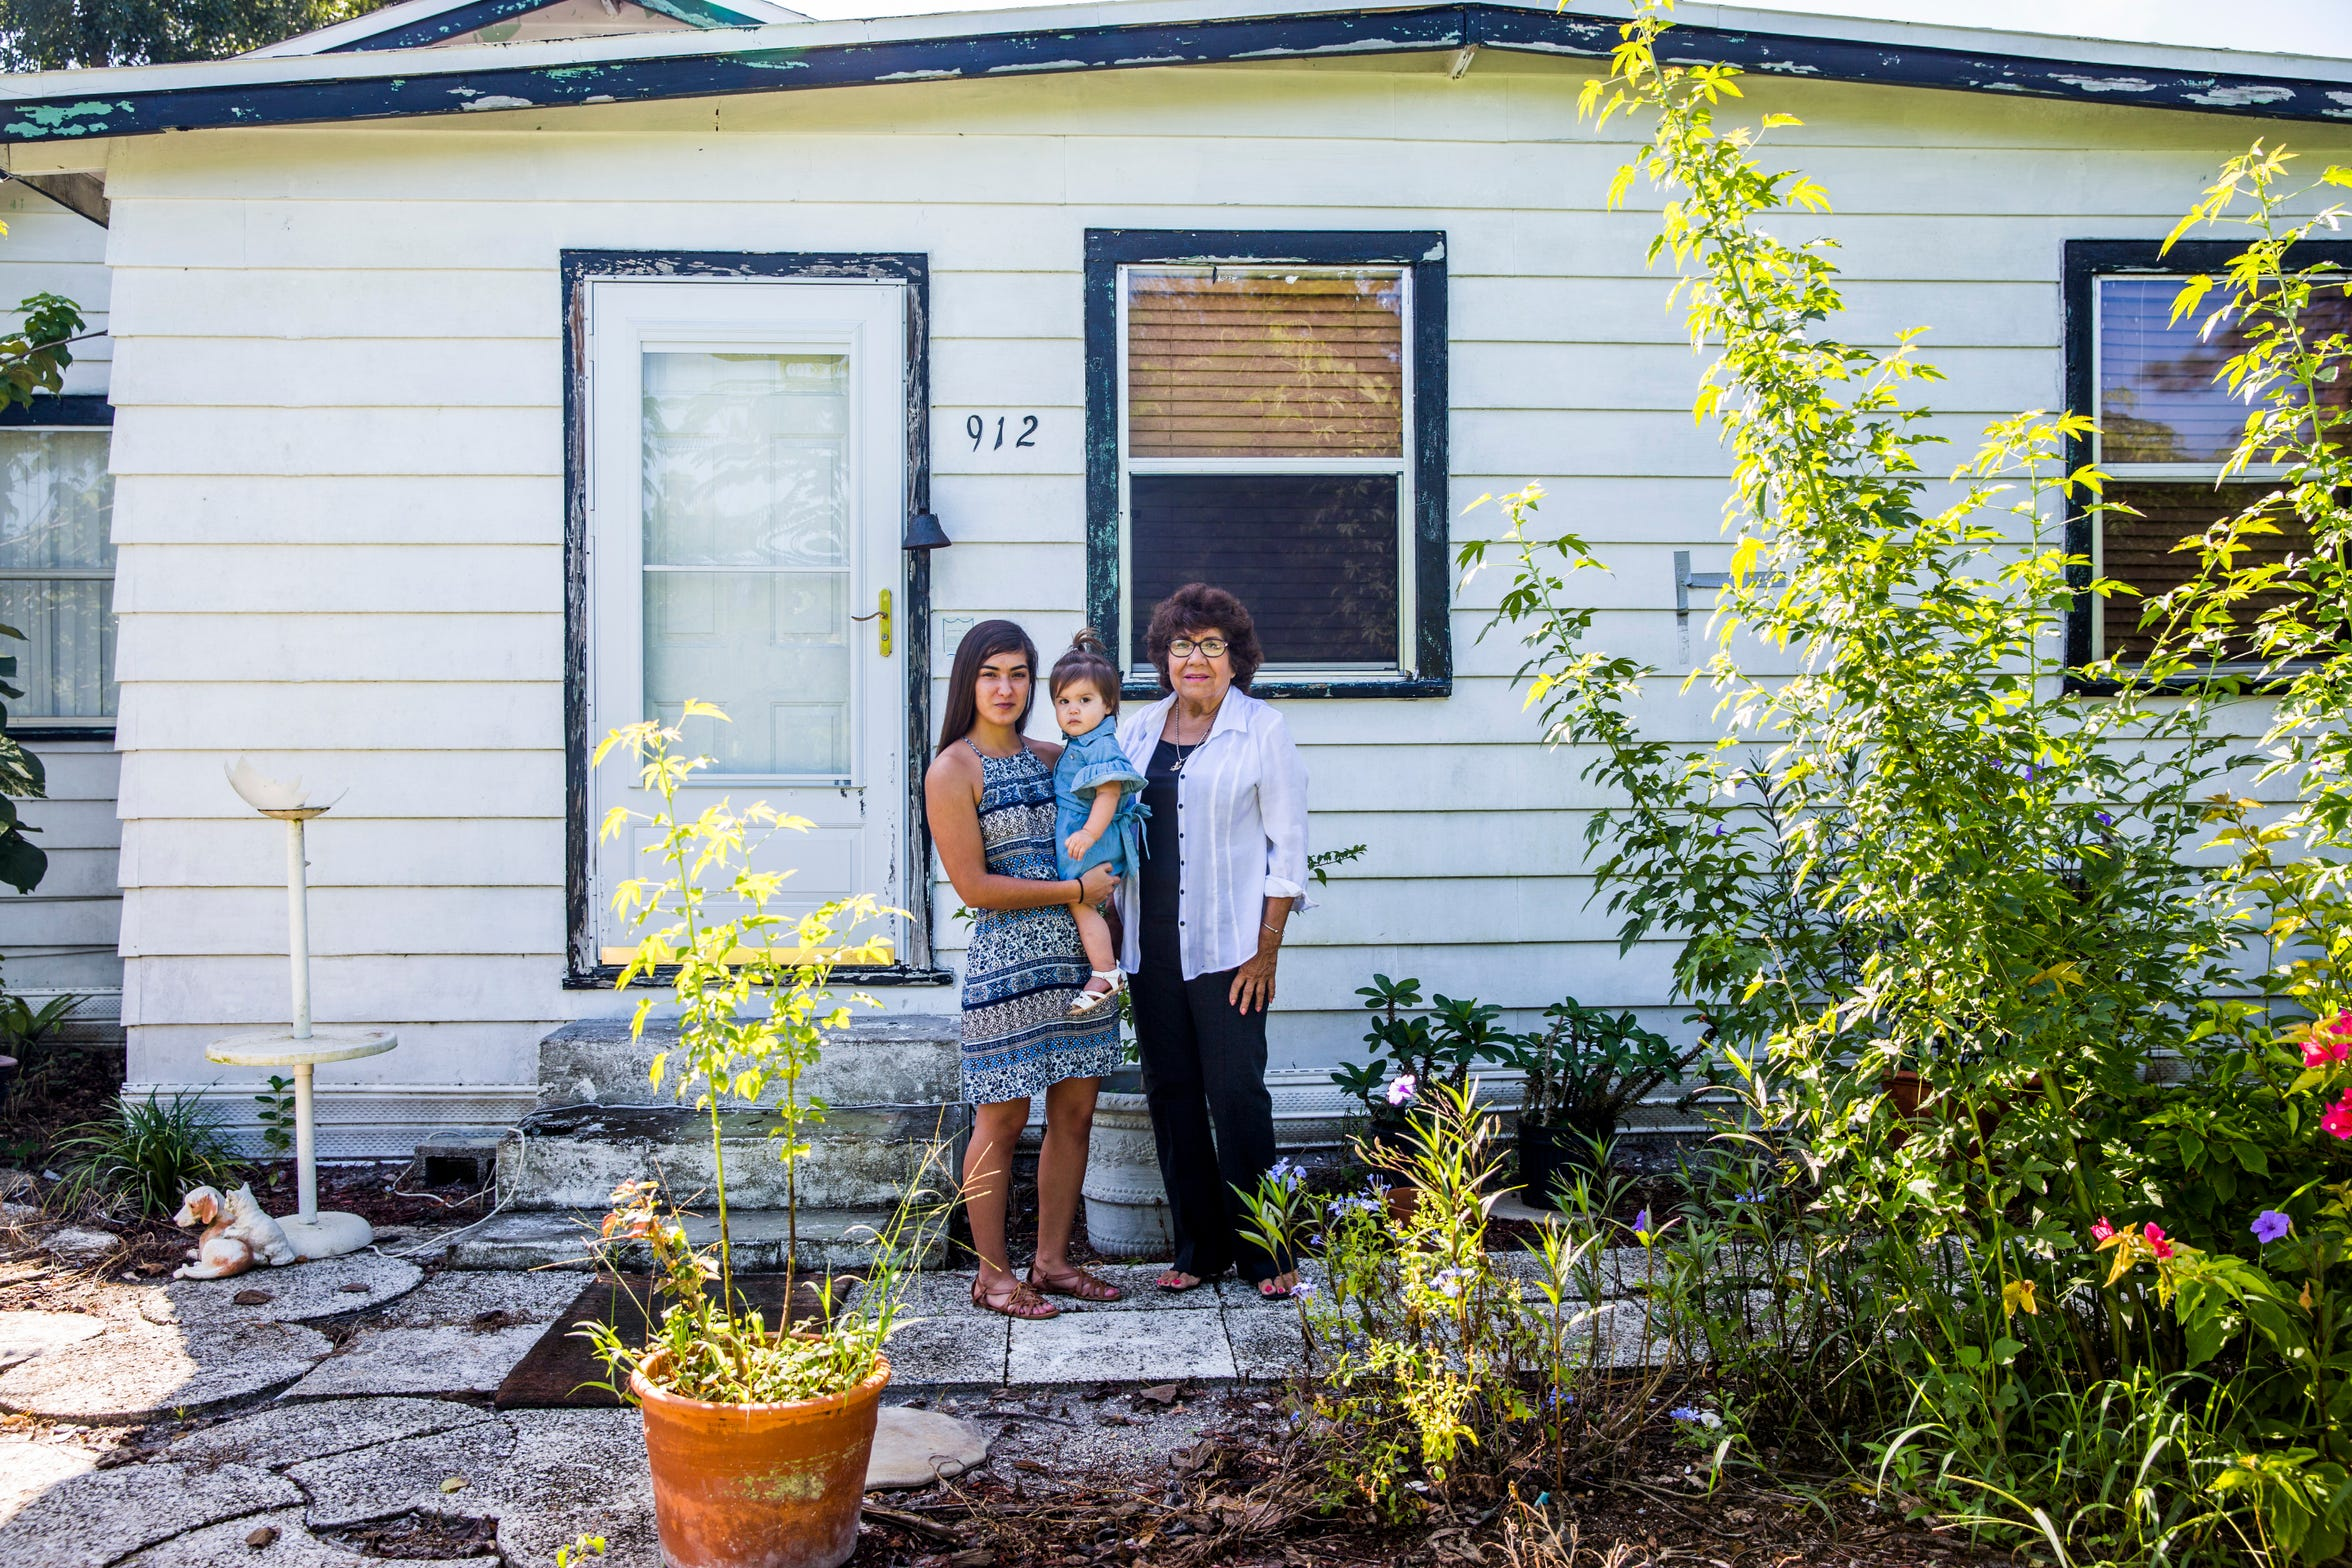 Norma Contreras, right, her great-granddaughter Arianna Contreras, 1, and Arianna's mother, Andreane Herrera, in front of their Immokalee home on Saturday, Sept. 1, 2018. Groups including United Methodist Committee on Relief, the Salvation Army, Rural Neighborhoods and the Mennonites Disaster Service repaired their home after it was severely damaged during Hurricane Irma last year.